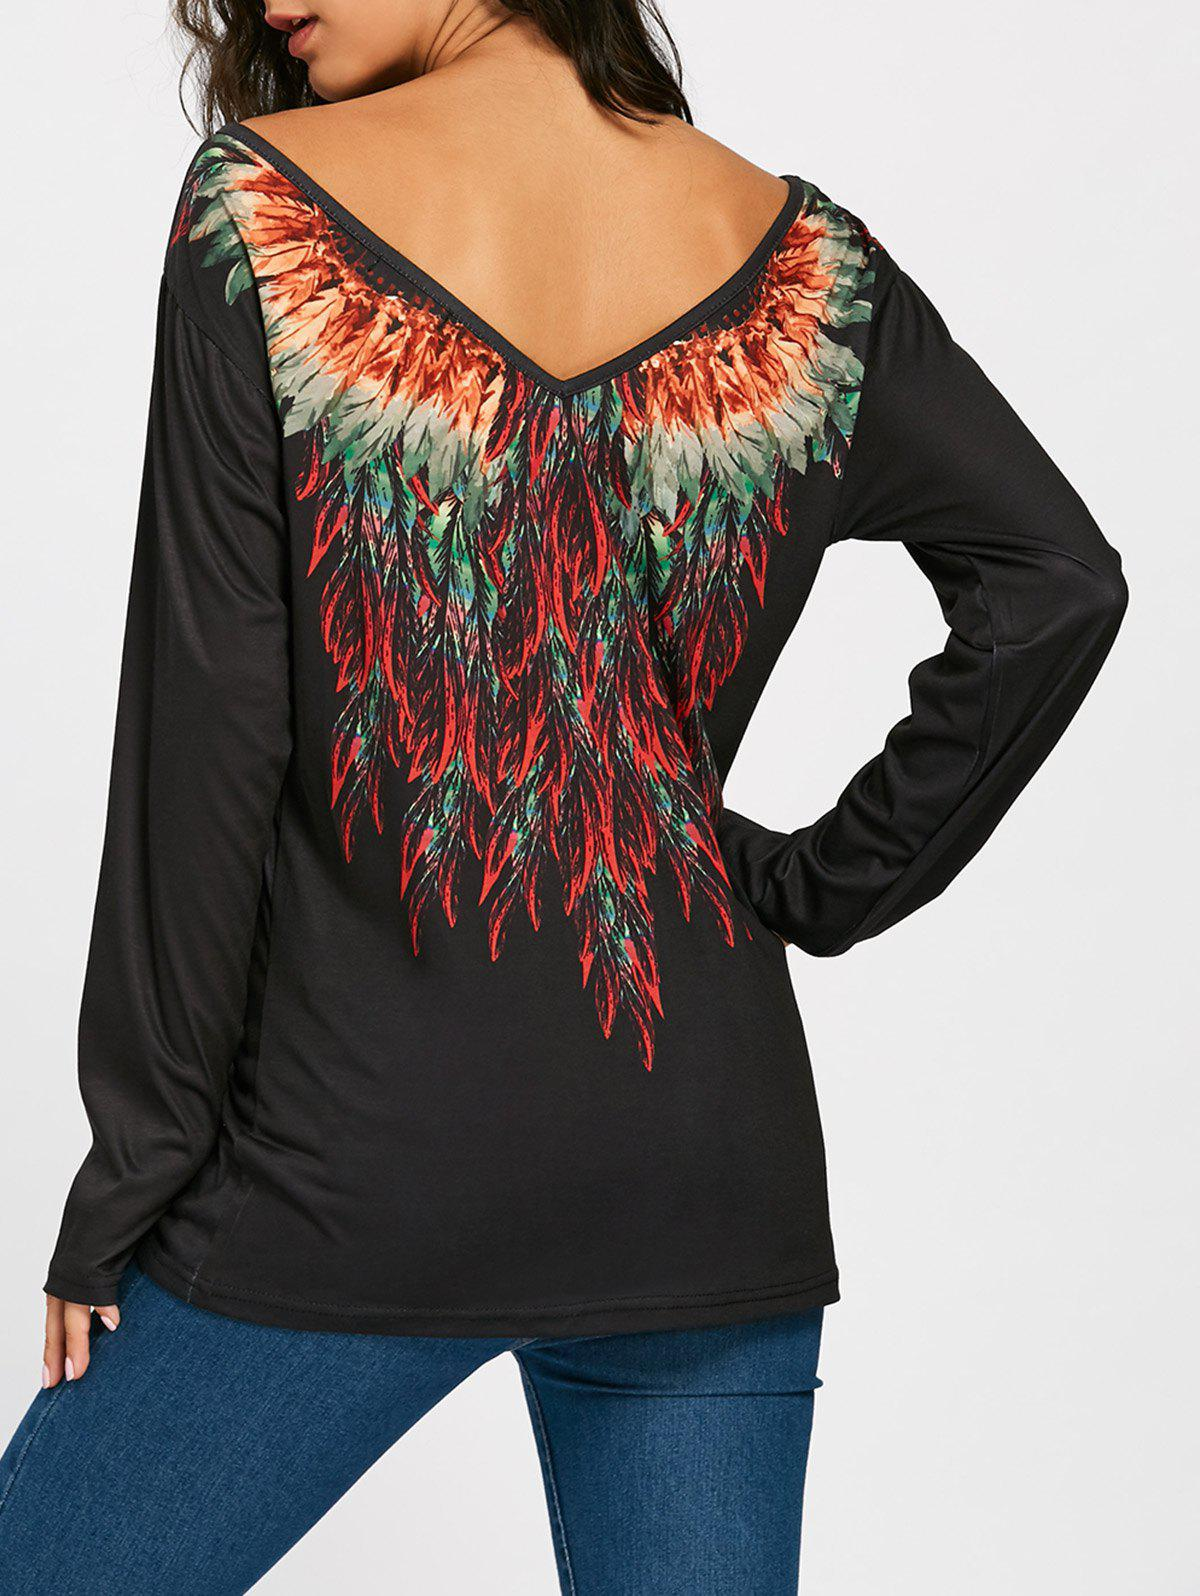 Tribal Feathers Print Long Sleeve T-shirtWOMEN<br><br>Size: XL; Color: BLACK; Material: Polyester,Spandex; Shirt Length: Regular; Sleeve Length: Full; Collar: Round Neck; Style: Fashion; Pattern Type: Feather,Print; Season: Fall,Spring; Elasticity: Micro-elastic; Weight: 0.2700kg; Package Contents: 1 x T-shirt;